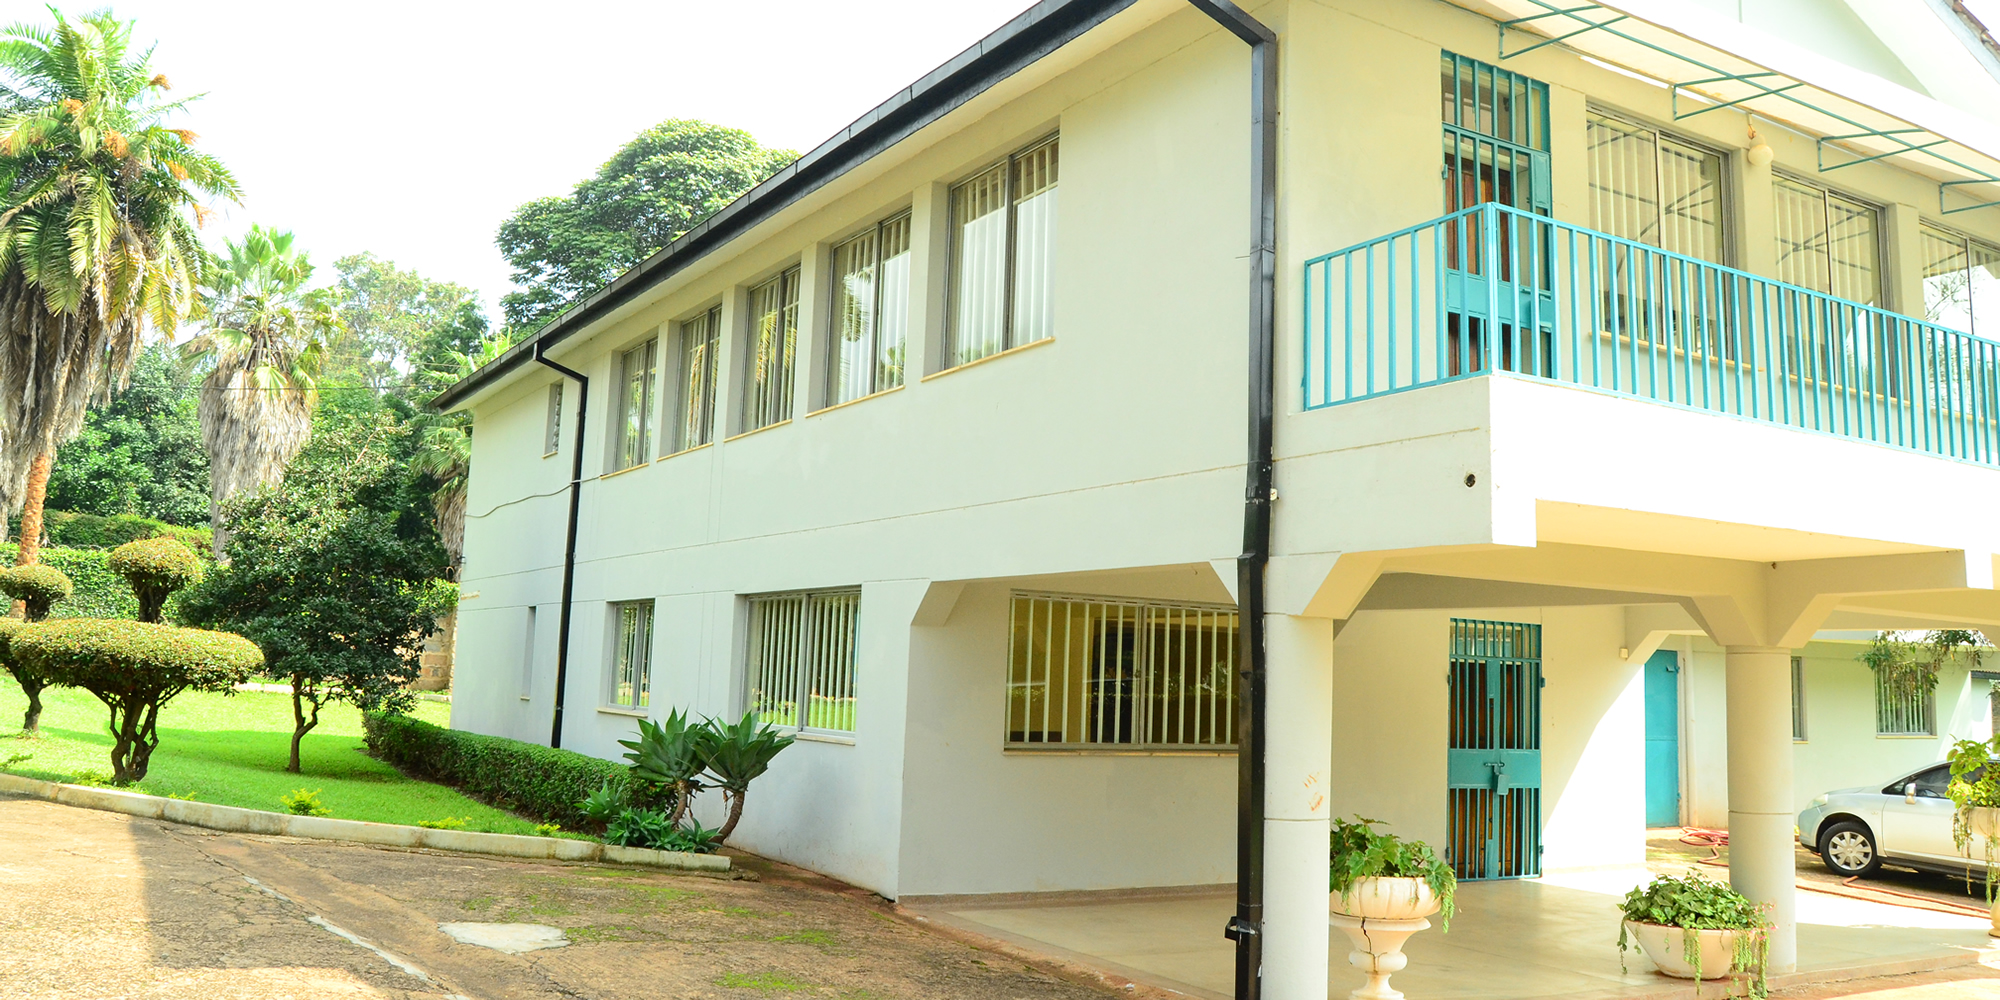 Commercial property 6 room House in Nyari Ksh 350,000